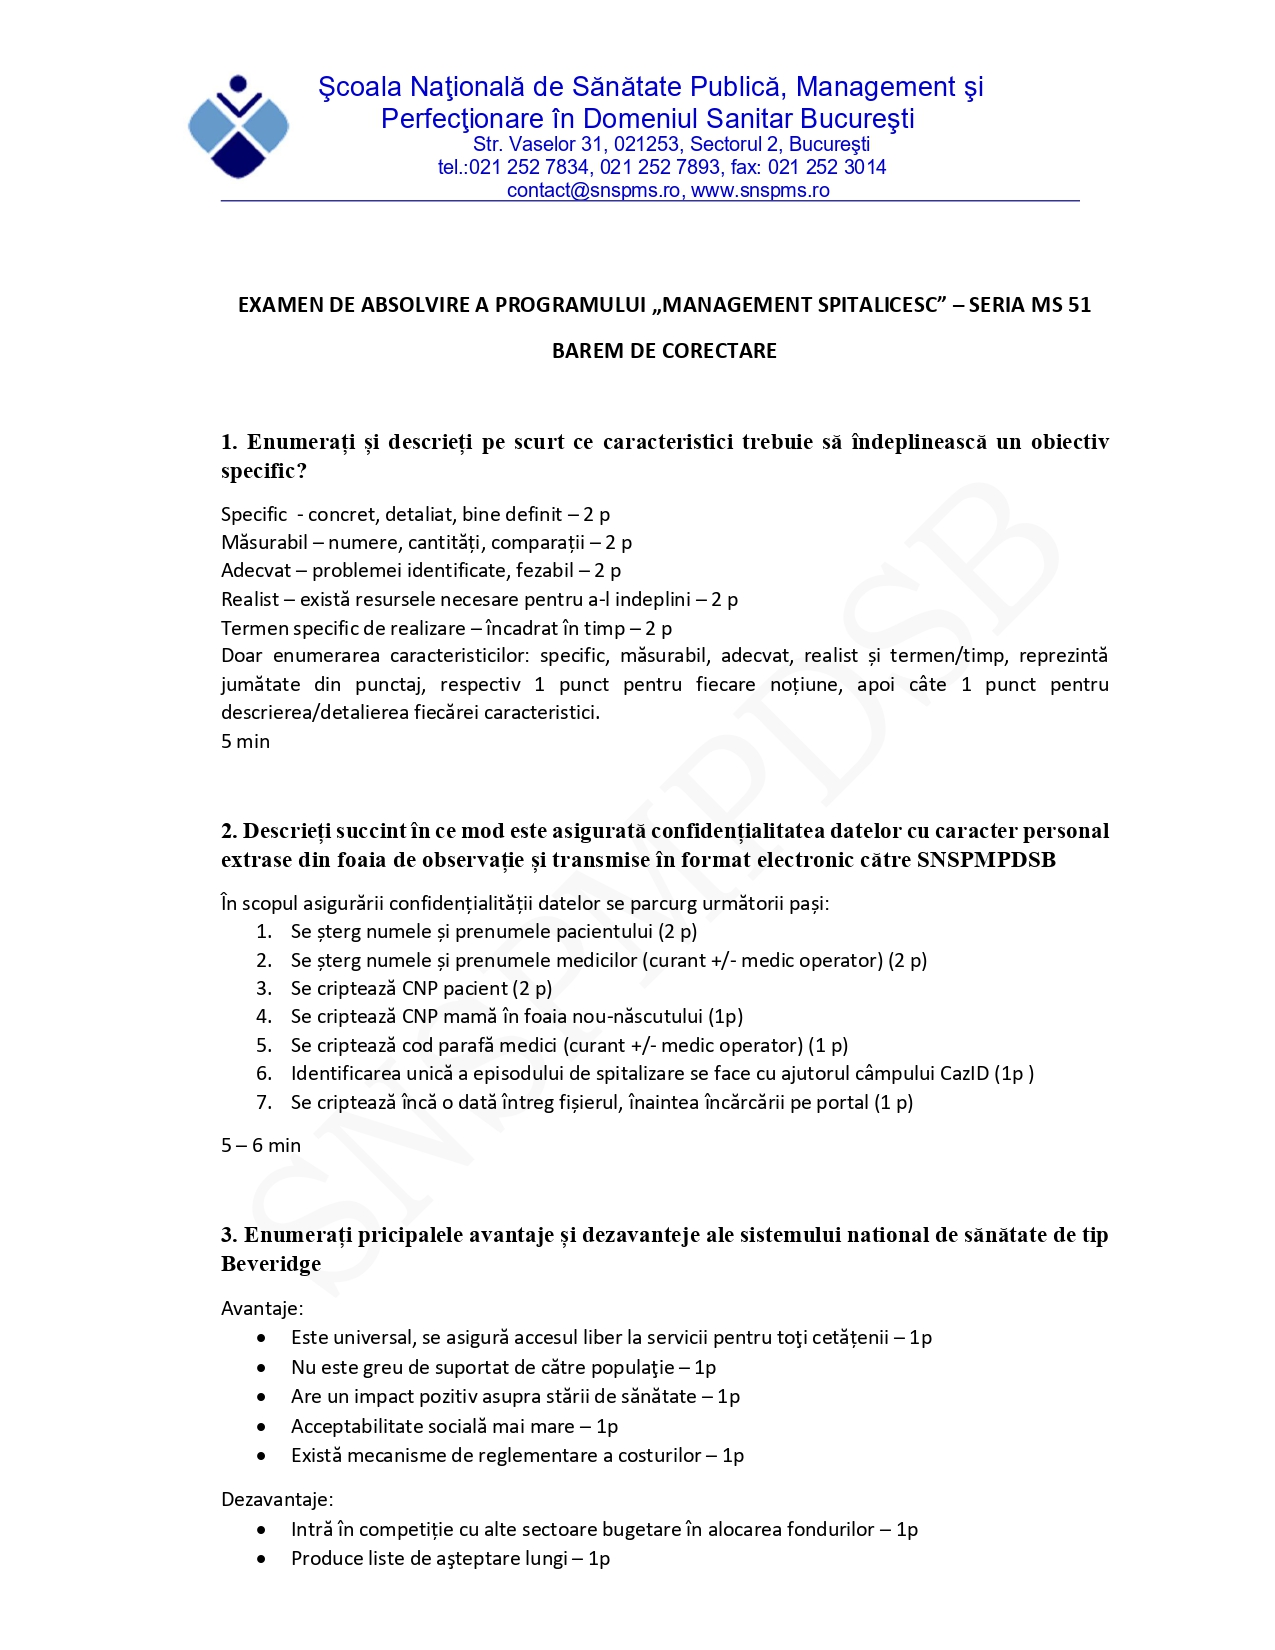 MS 51 – Program de Formare in Management Spitalicesc